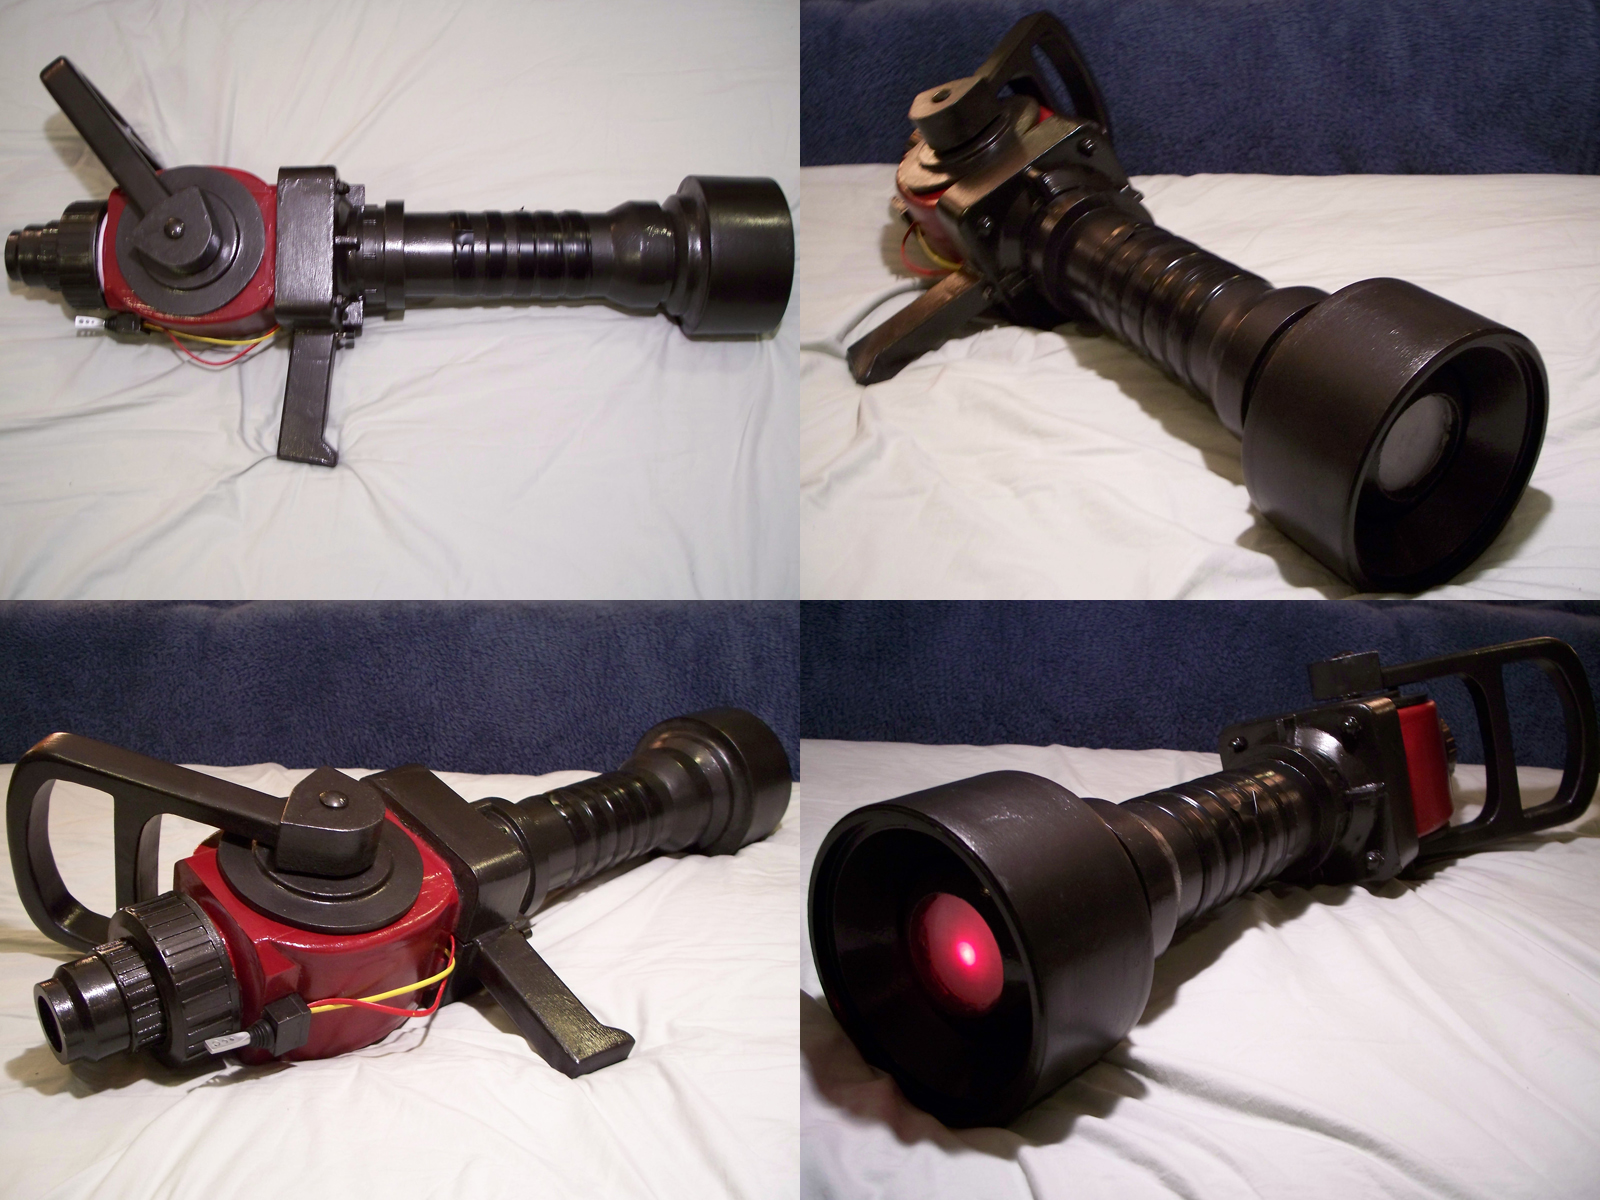 Fortress 2 medigun 2009 by kobyashymaru on deviantart team fortress 2 medigun 2009 by kobyashymaru malvernweather